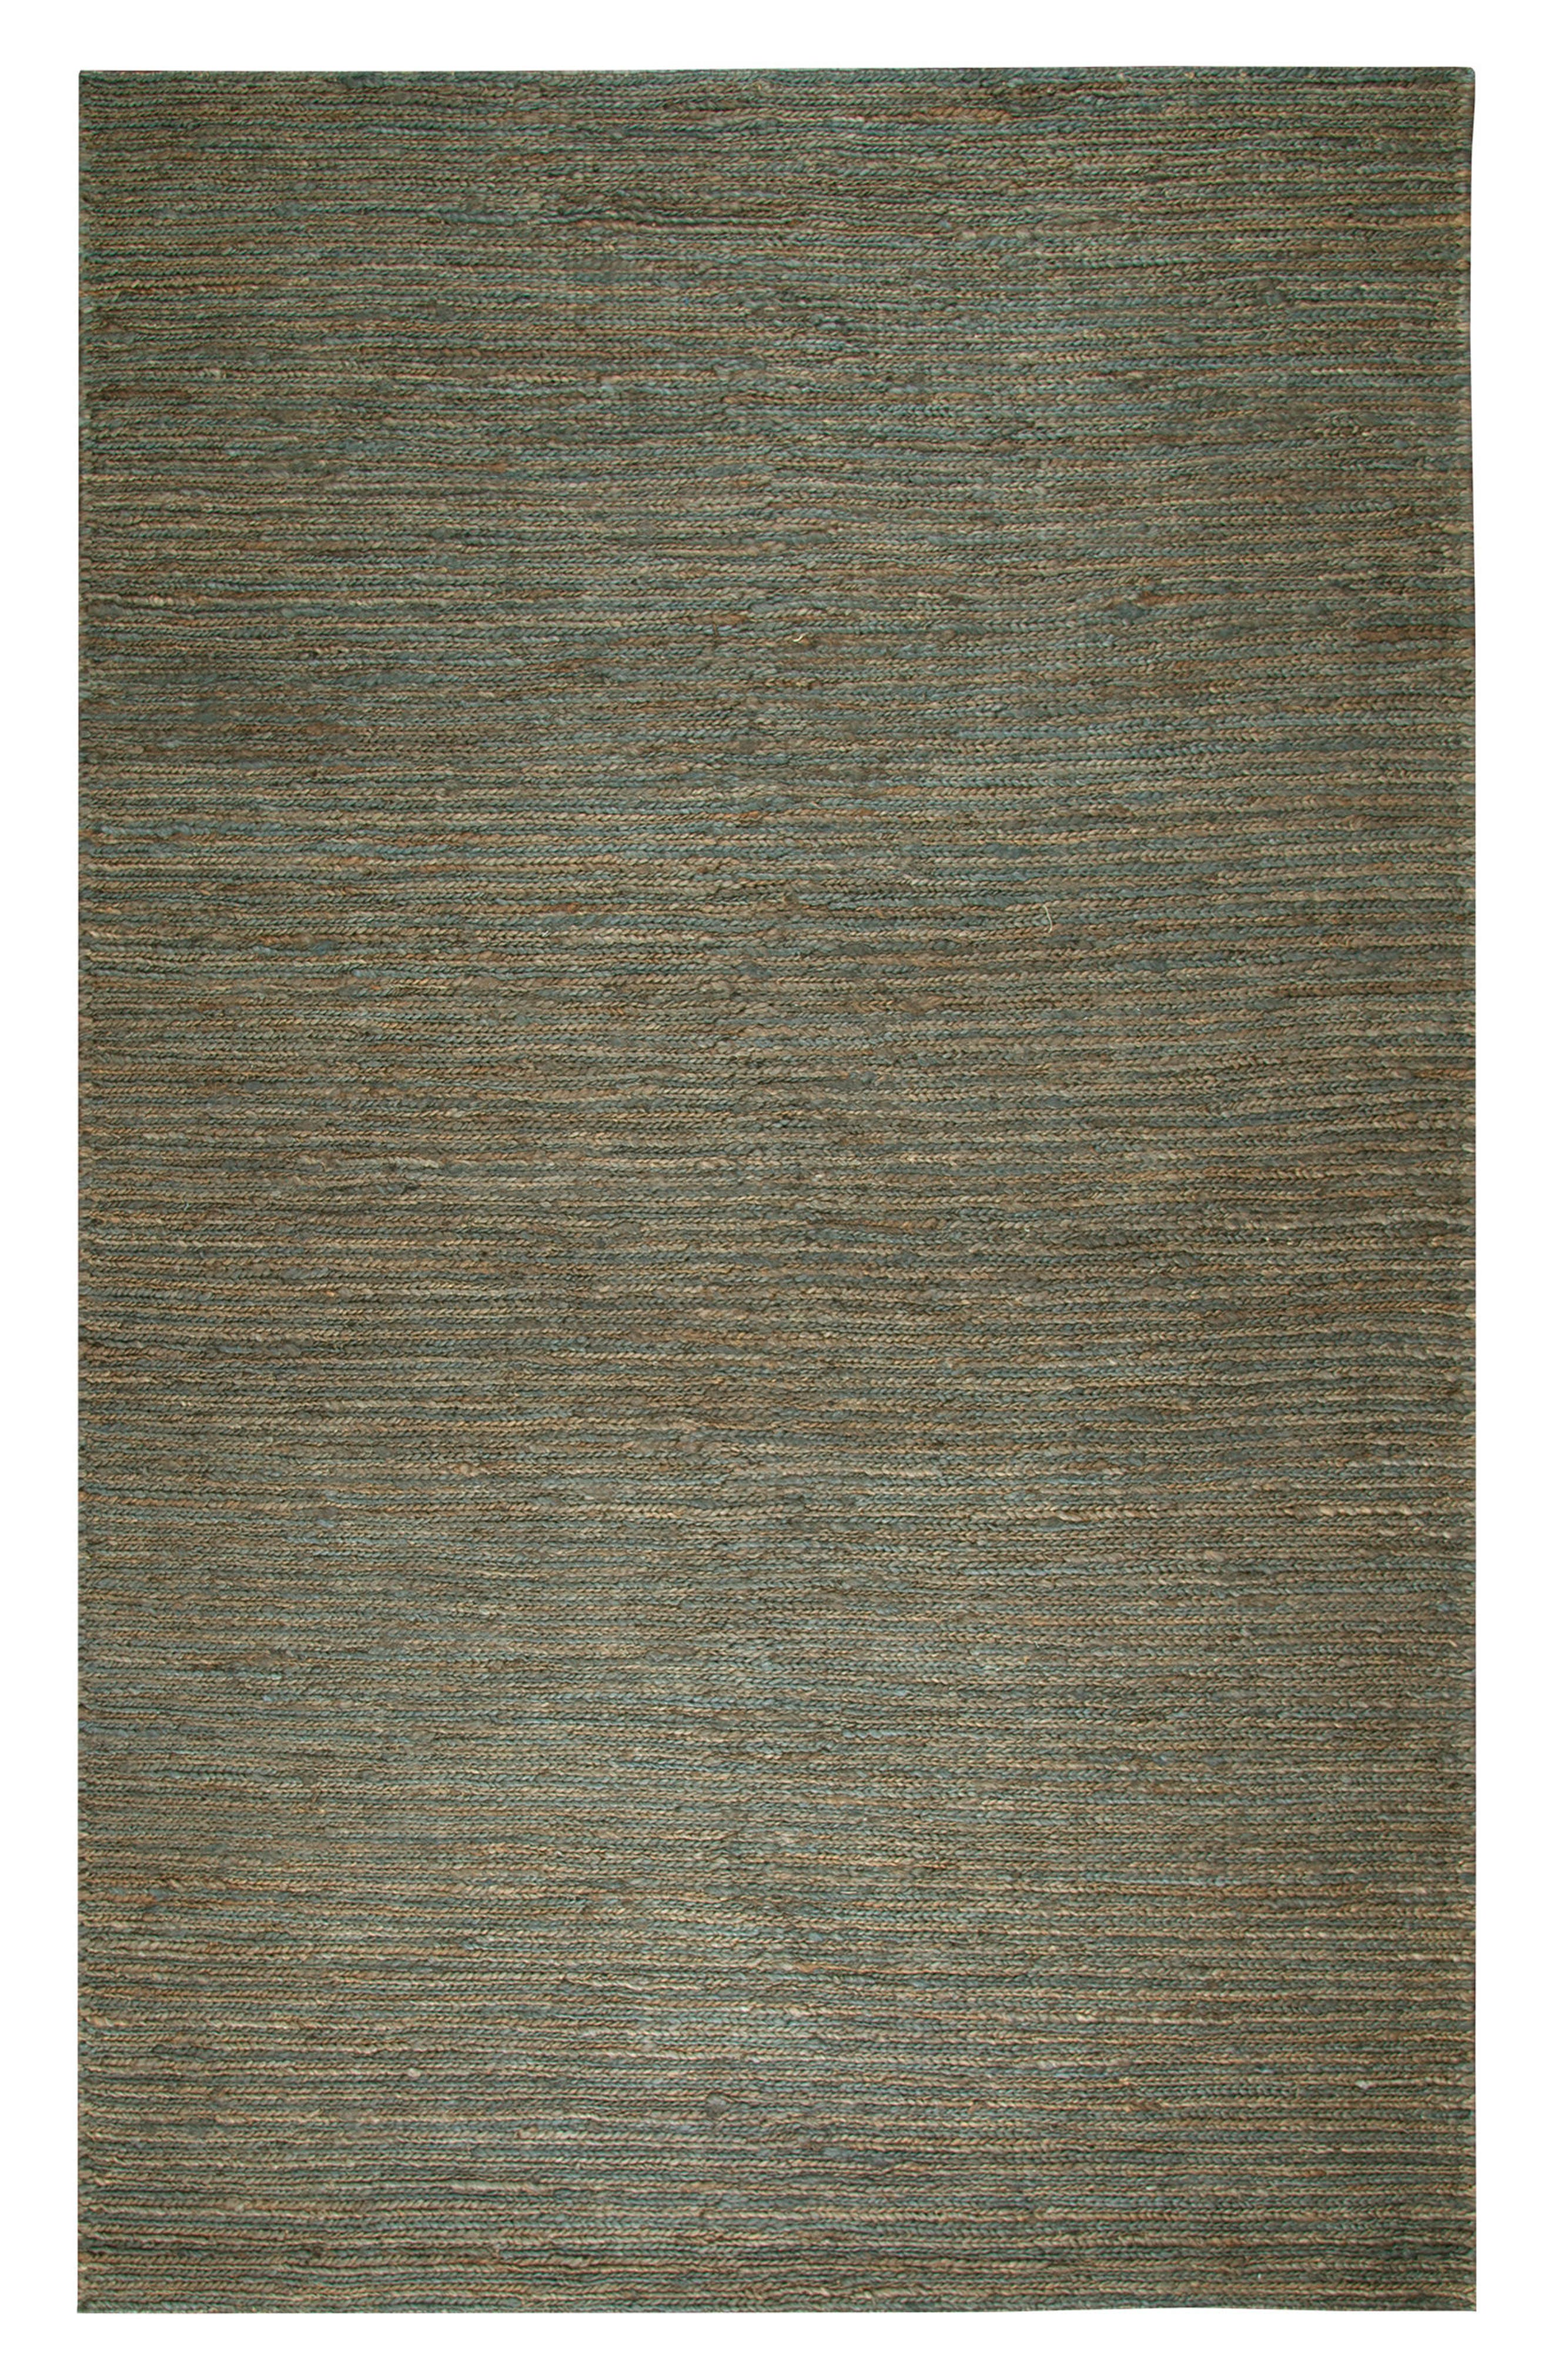 Main Image - Rizzy Home 'Whittier Collection' Handwoven Jute Area Rug